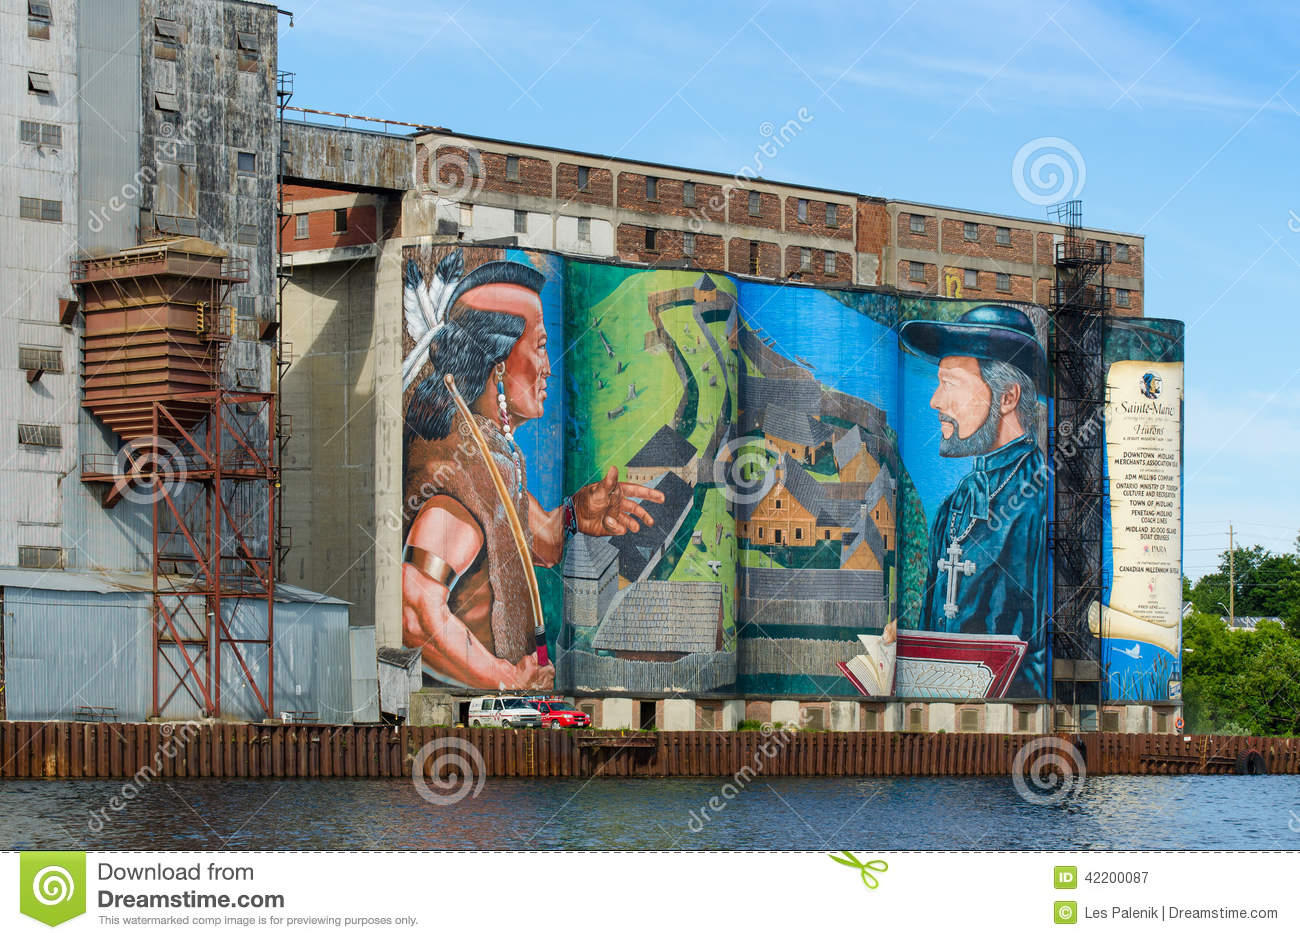 Historic mural in midland ontario